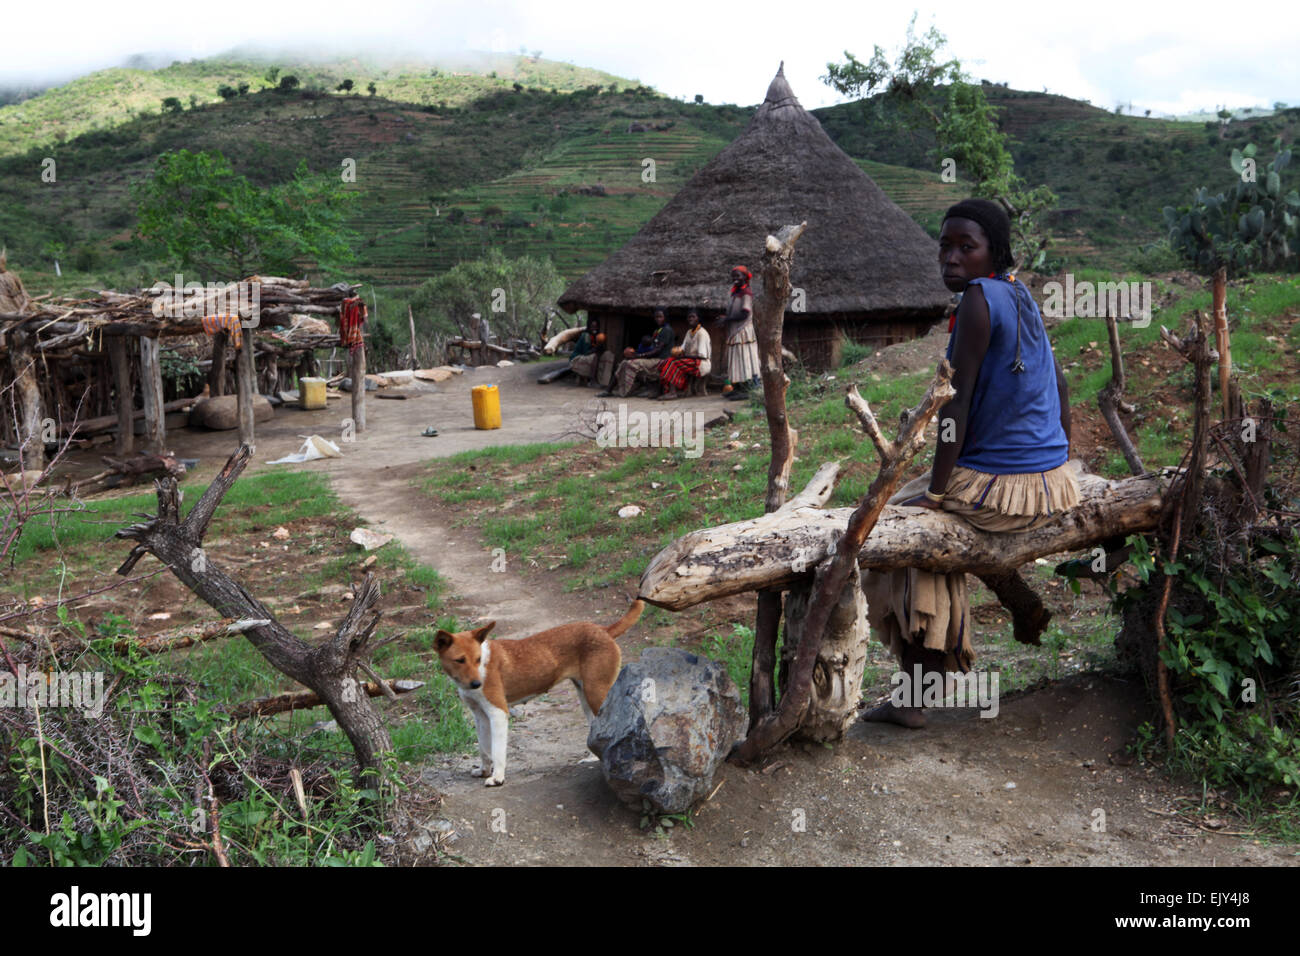 A home in the Omo Valley of Ethiopia. - Stock Image